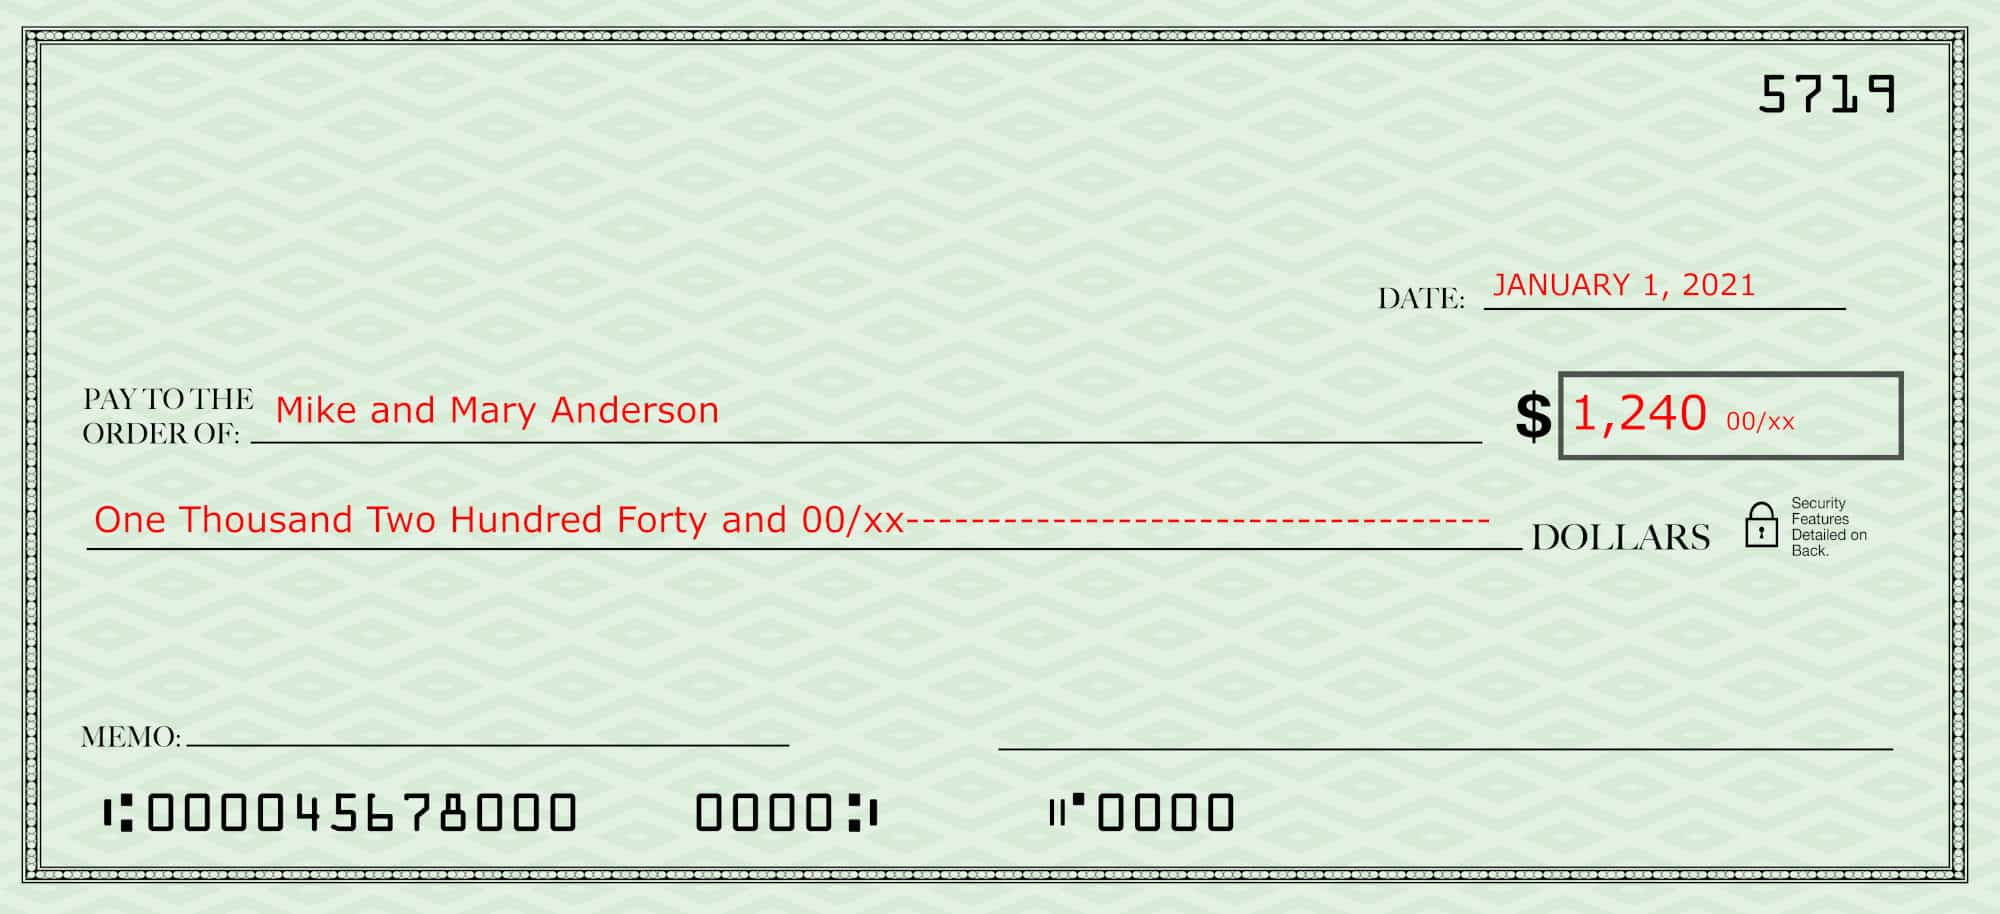 Filling out a check--blank check with the date, payee and amount in both words and numbers filled in